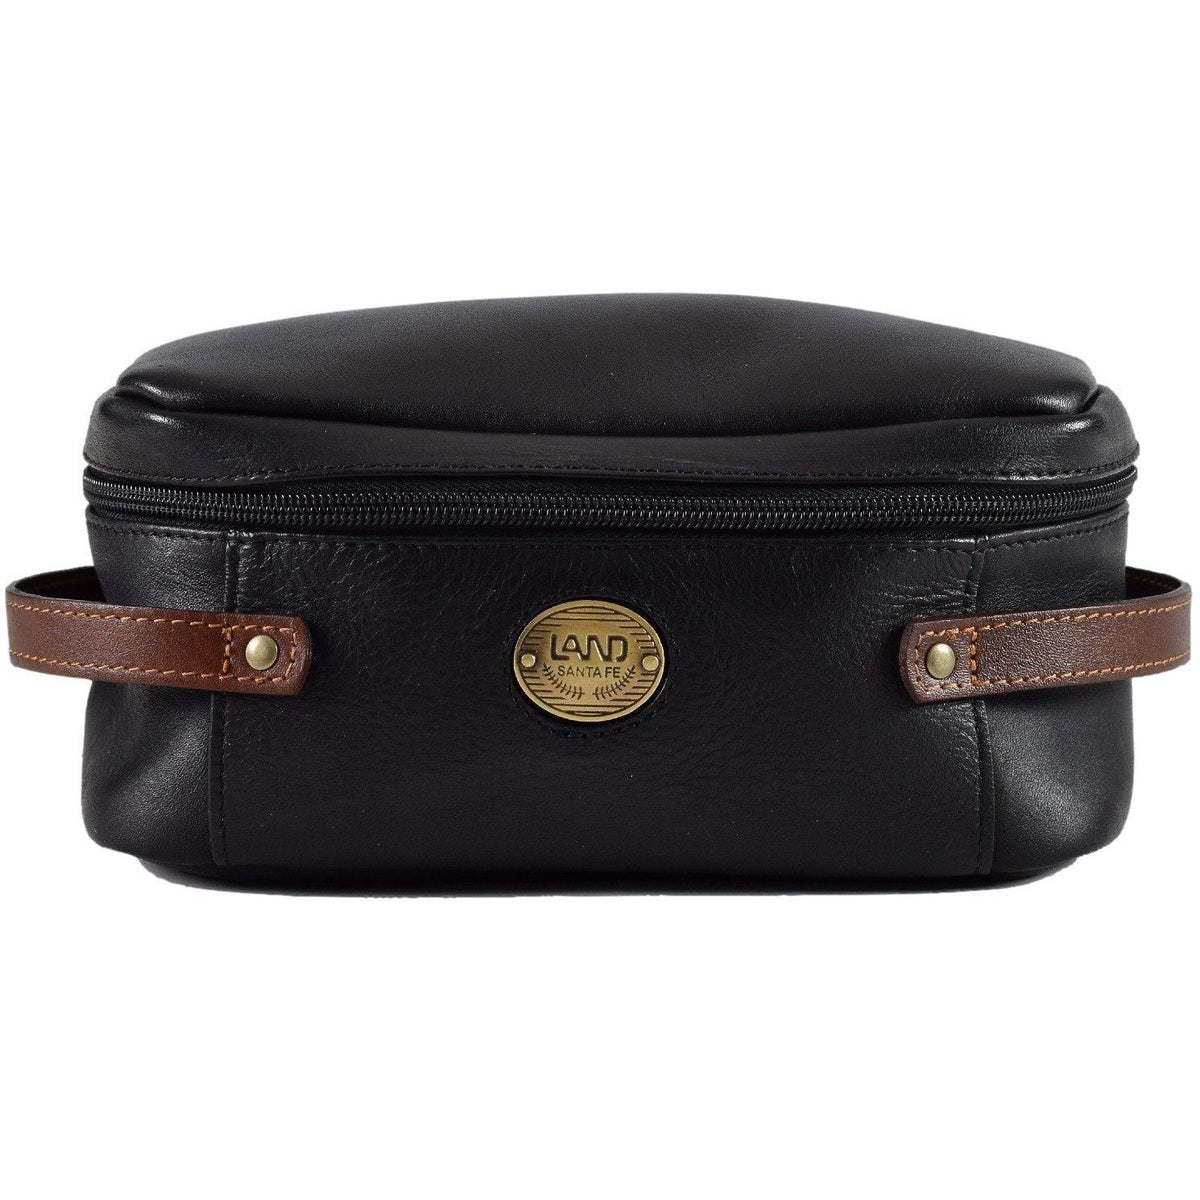 Santa Fe Brisbane Toiletry Kit, Toiletry Bag | LAND Leather